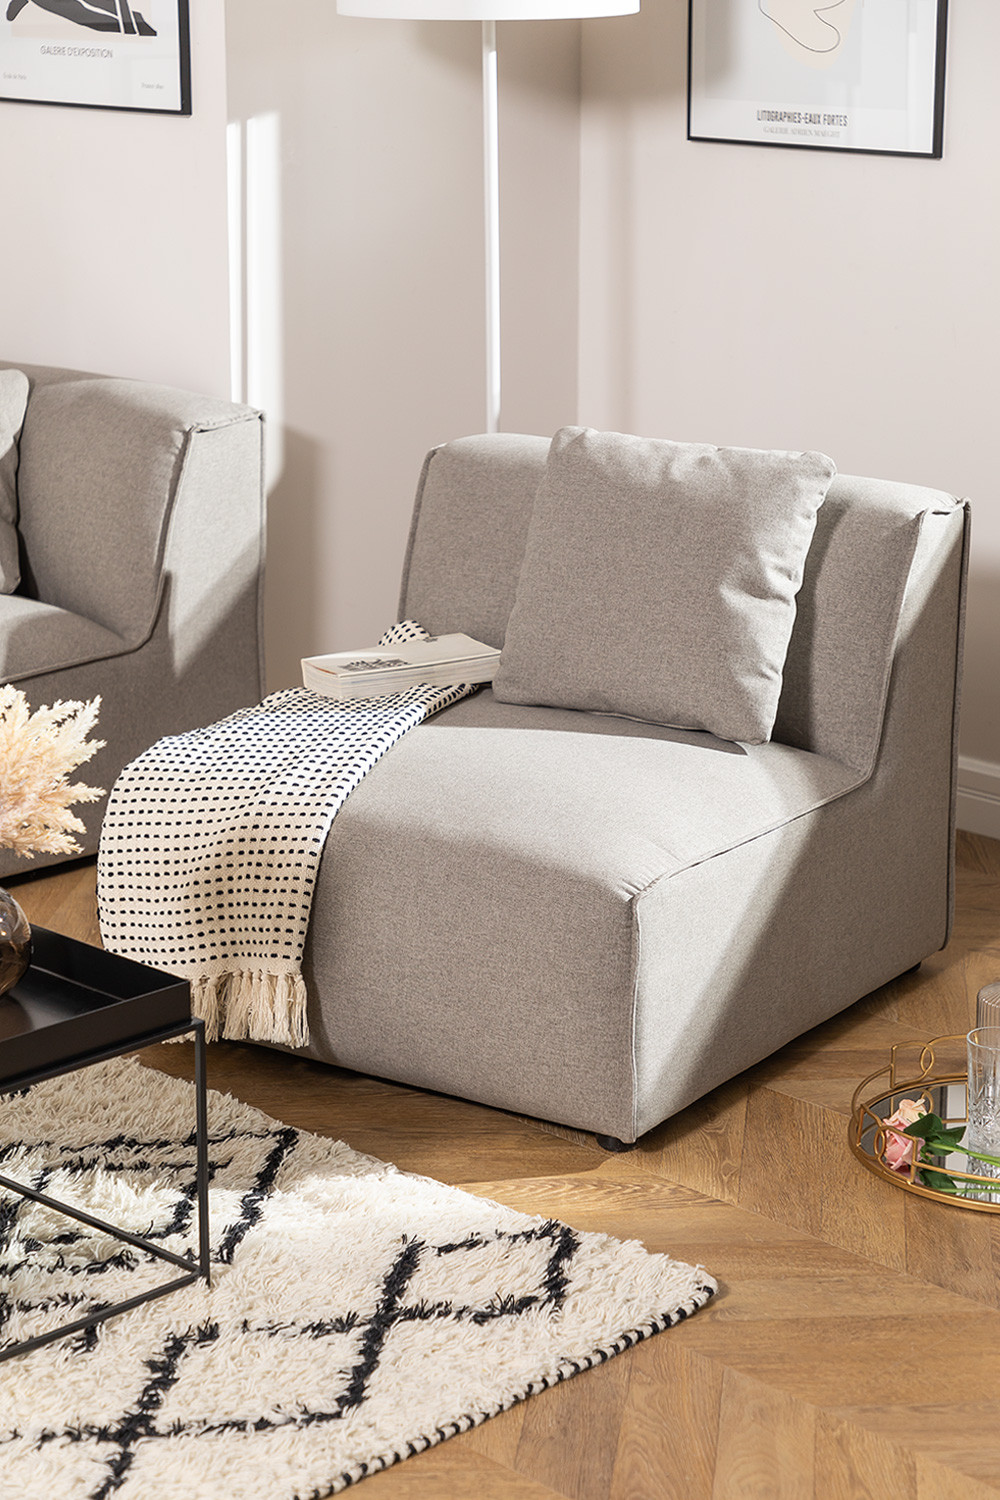 Centre Armchair for Aremy Modular Sofa, gallery image 1